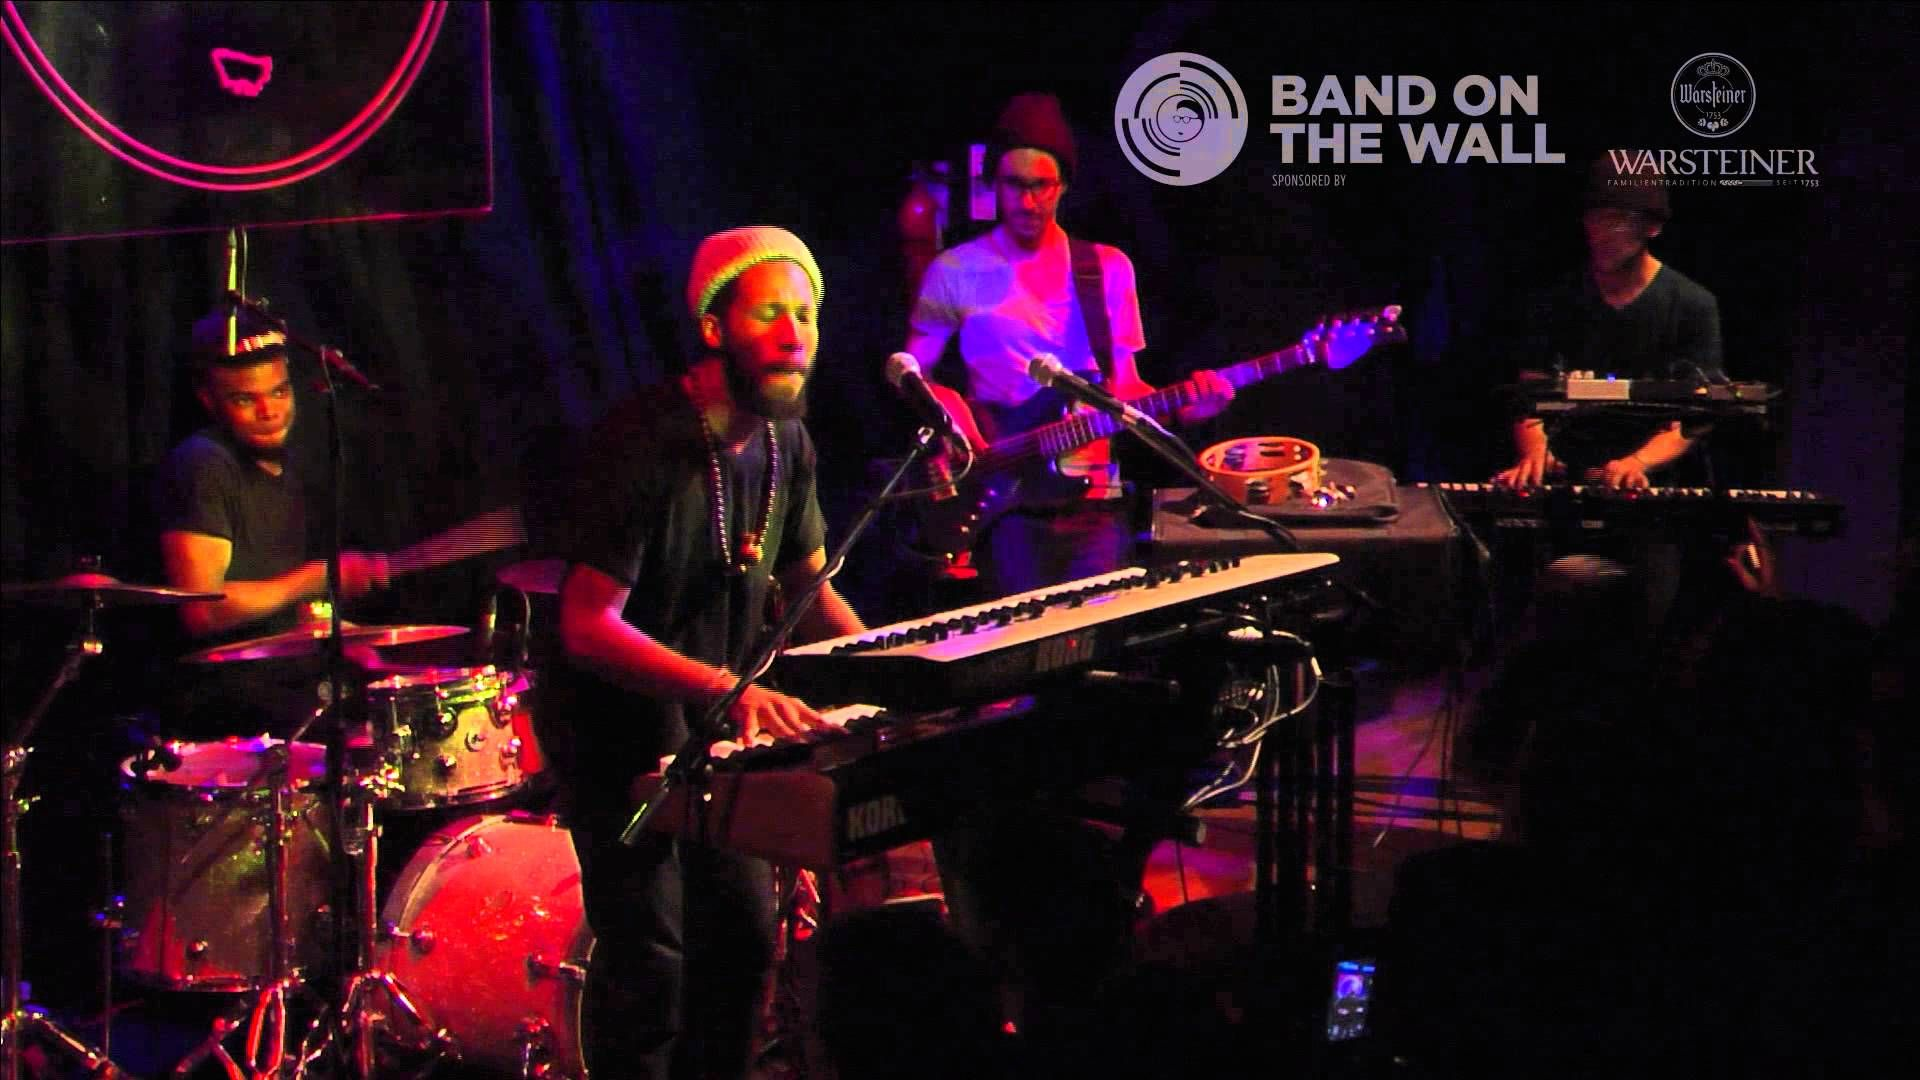 Cory Henry & The Funk Apostles 'What's Going On', live at Band on the Wall